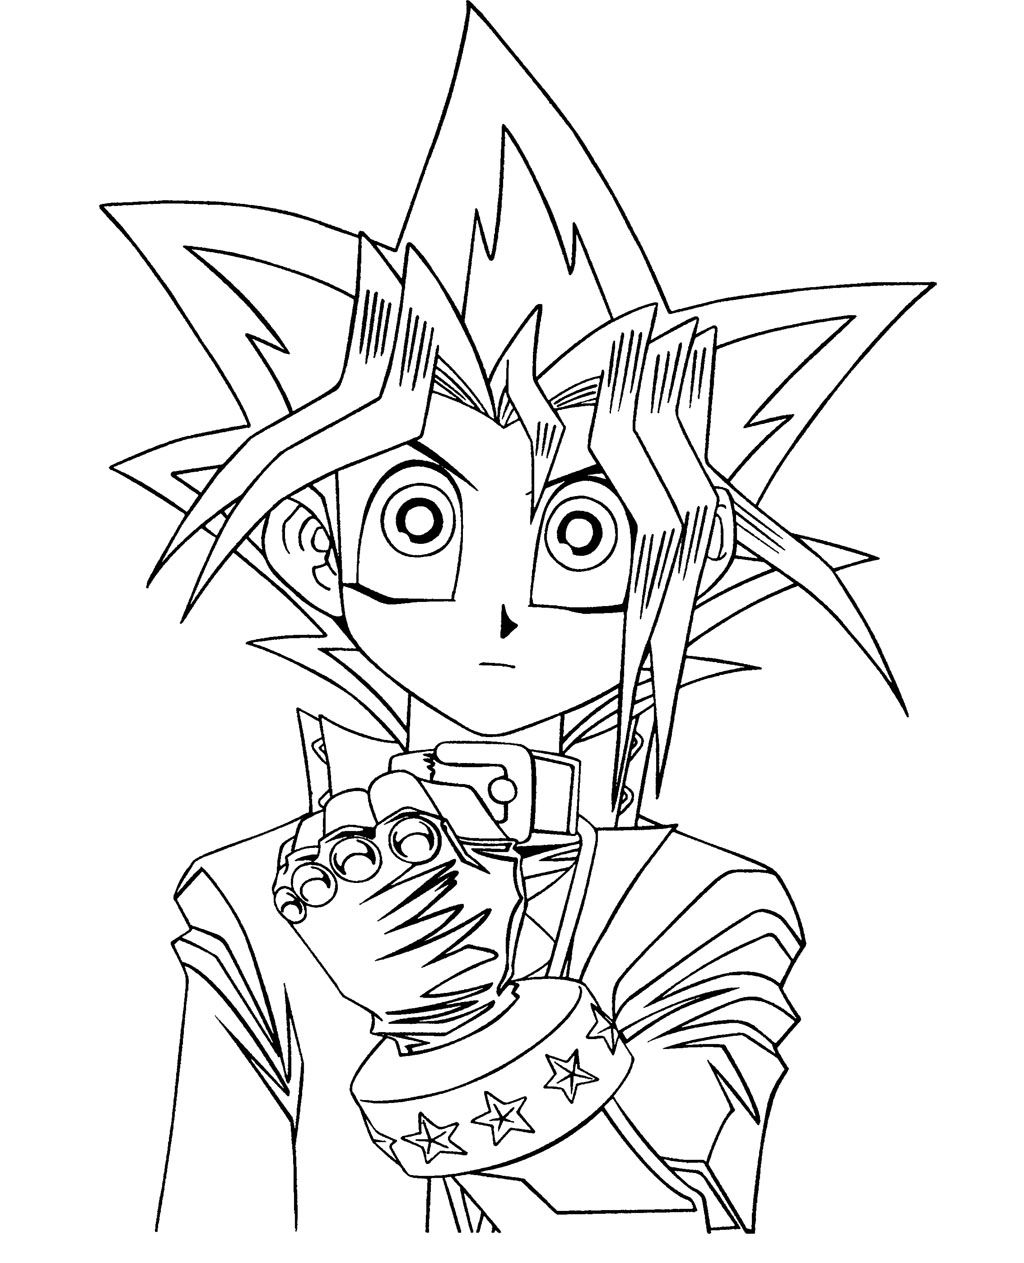 Yugi Muto Coloring Page Cartoon Coloring Pages Coloring Pages